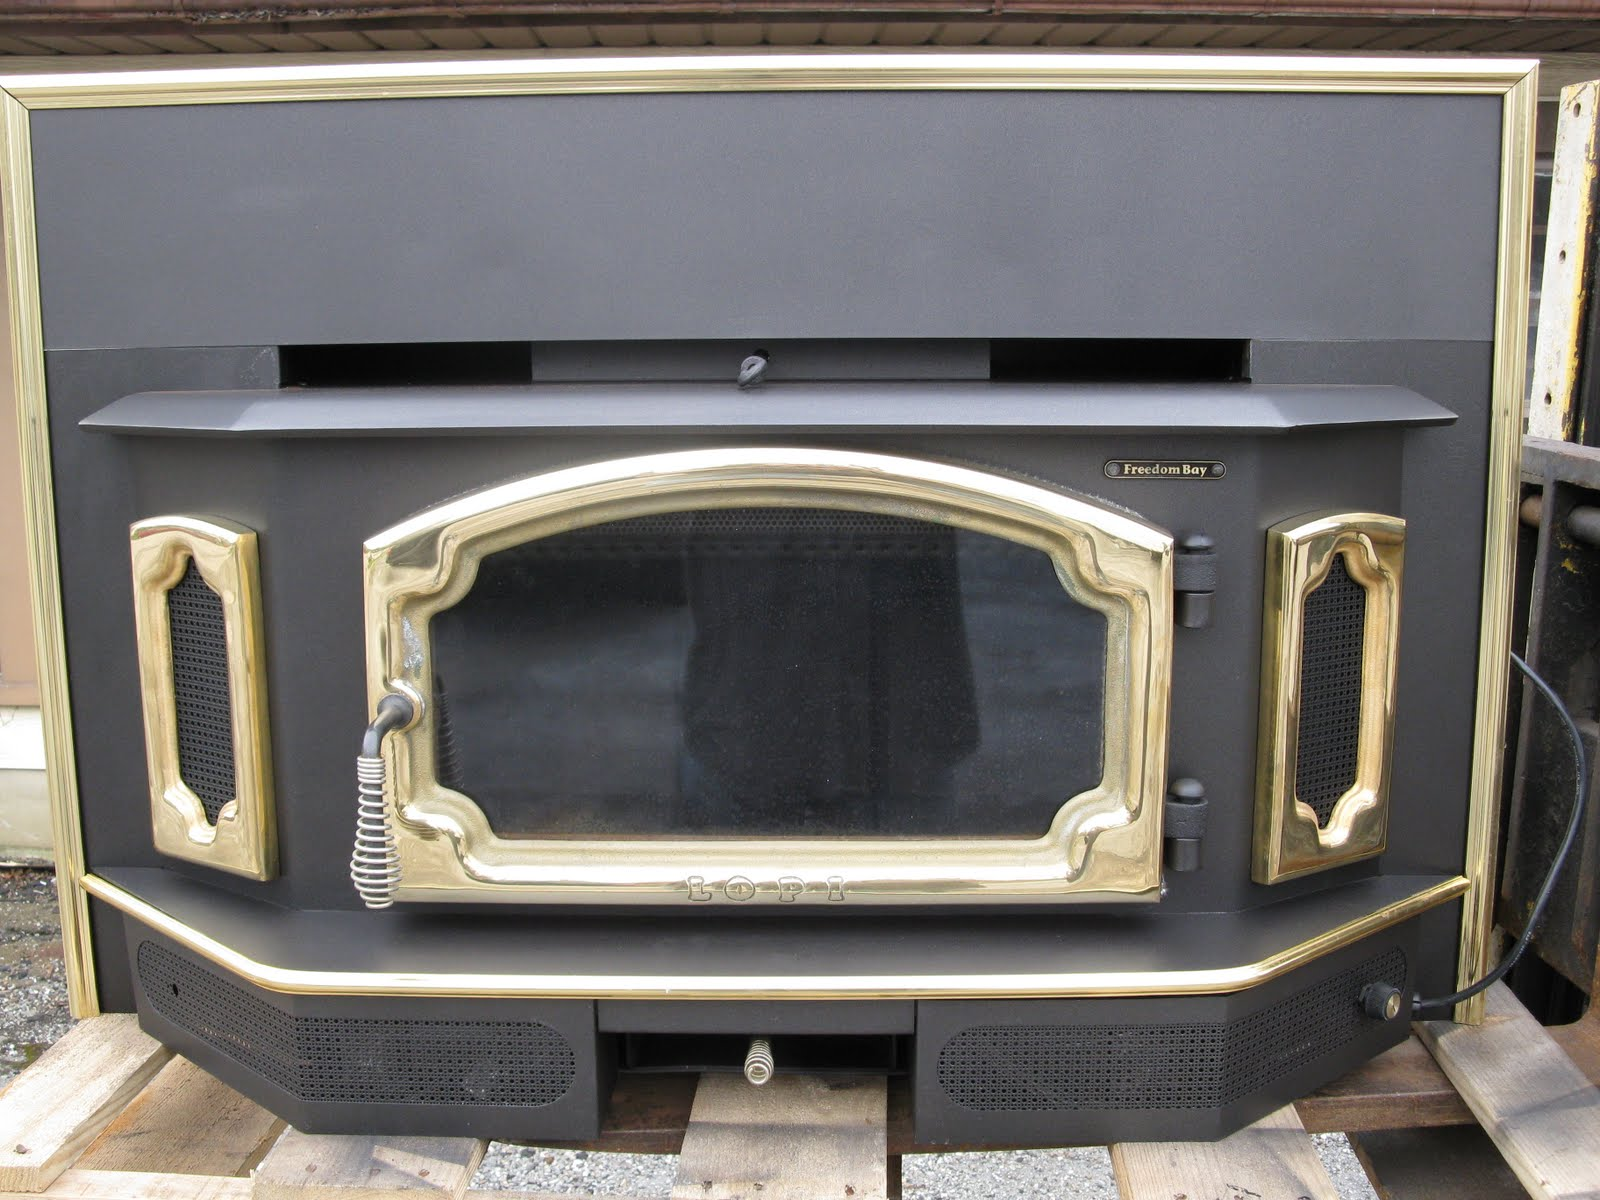 usedfreedombayinsert used freedom bay fireplace insert